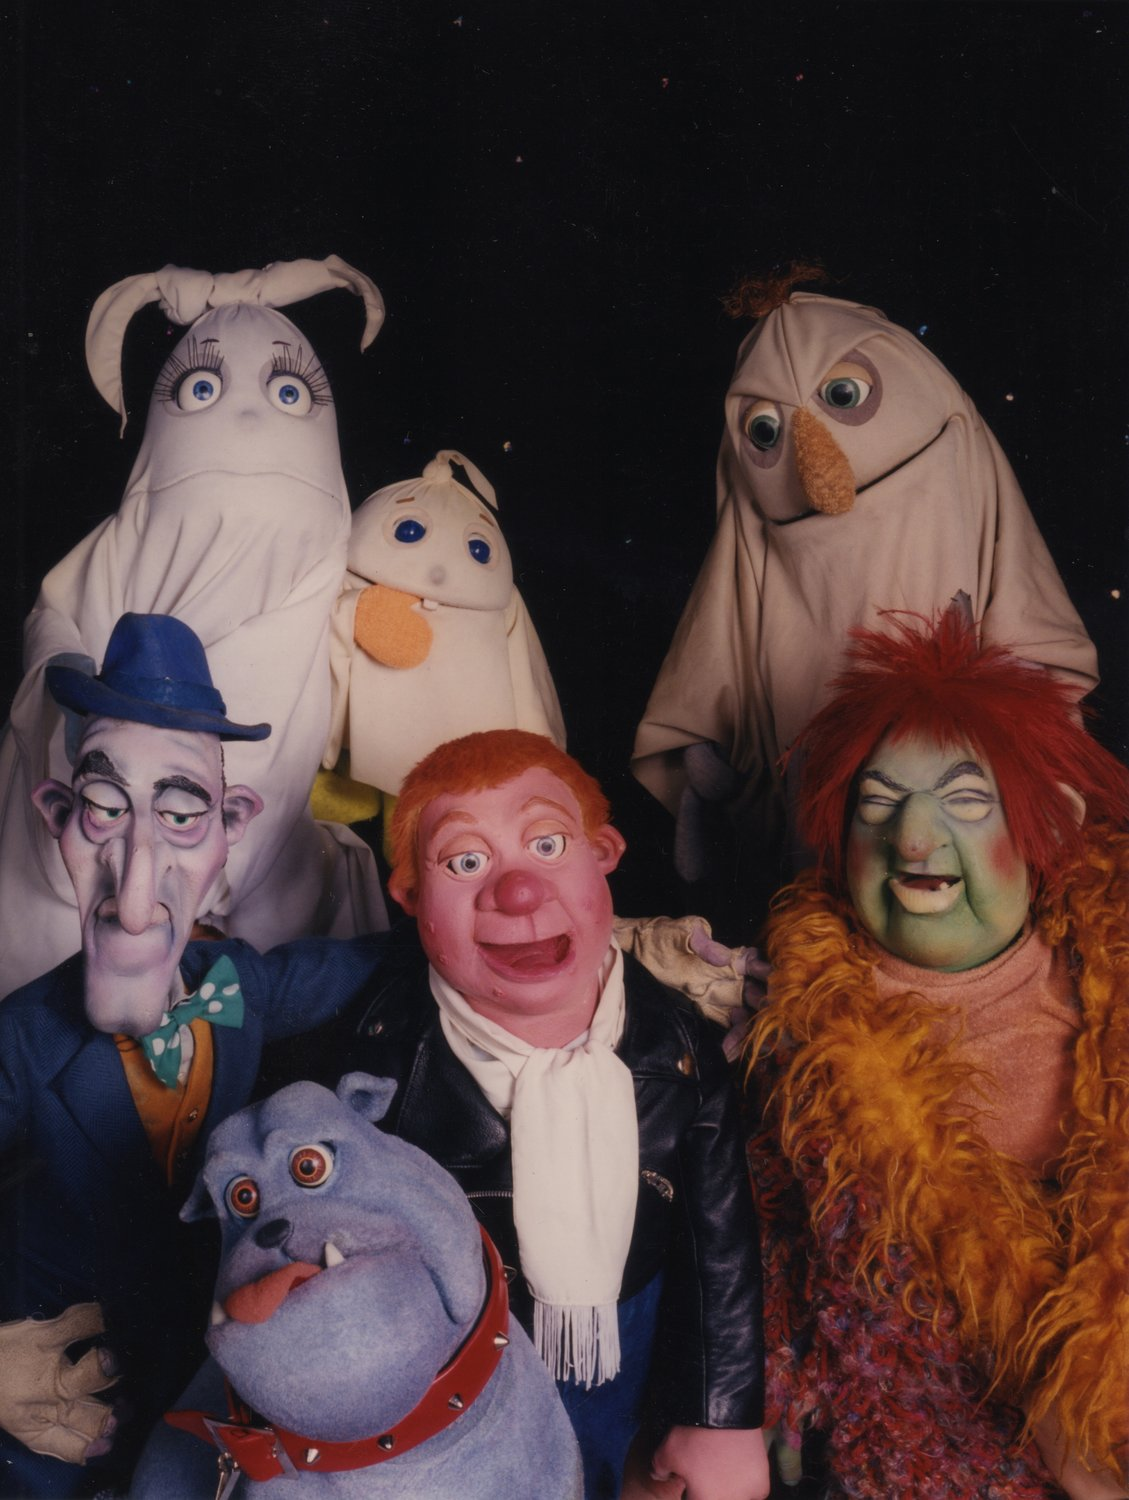 <em>The Spooks of Bottle Bay</em> (années 1990), séries télévisées pour Carlton TV par Playboard Puppets. Personnages sur la photo : (en bas à gauche) Cedric, (au centre) Sid being spooked, Max the dog, (à droite) Sybil Sludge, (en haut, de gauche à droite) Sally Spook, Baby Spook, Fred Spook. Photo réproduite avec l'aimable autorisation de Playboard Puppets